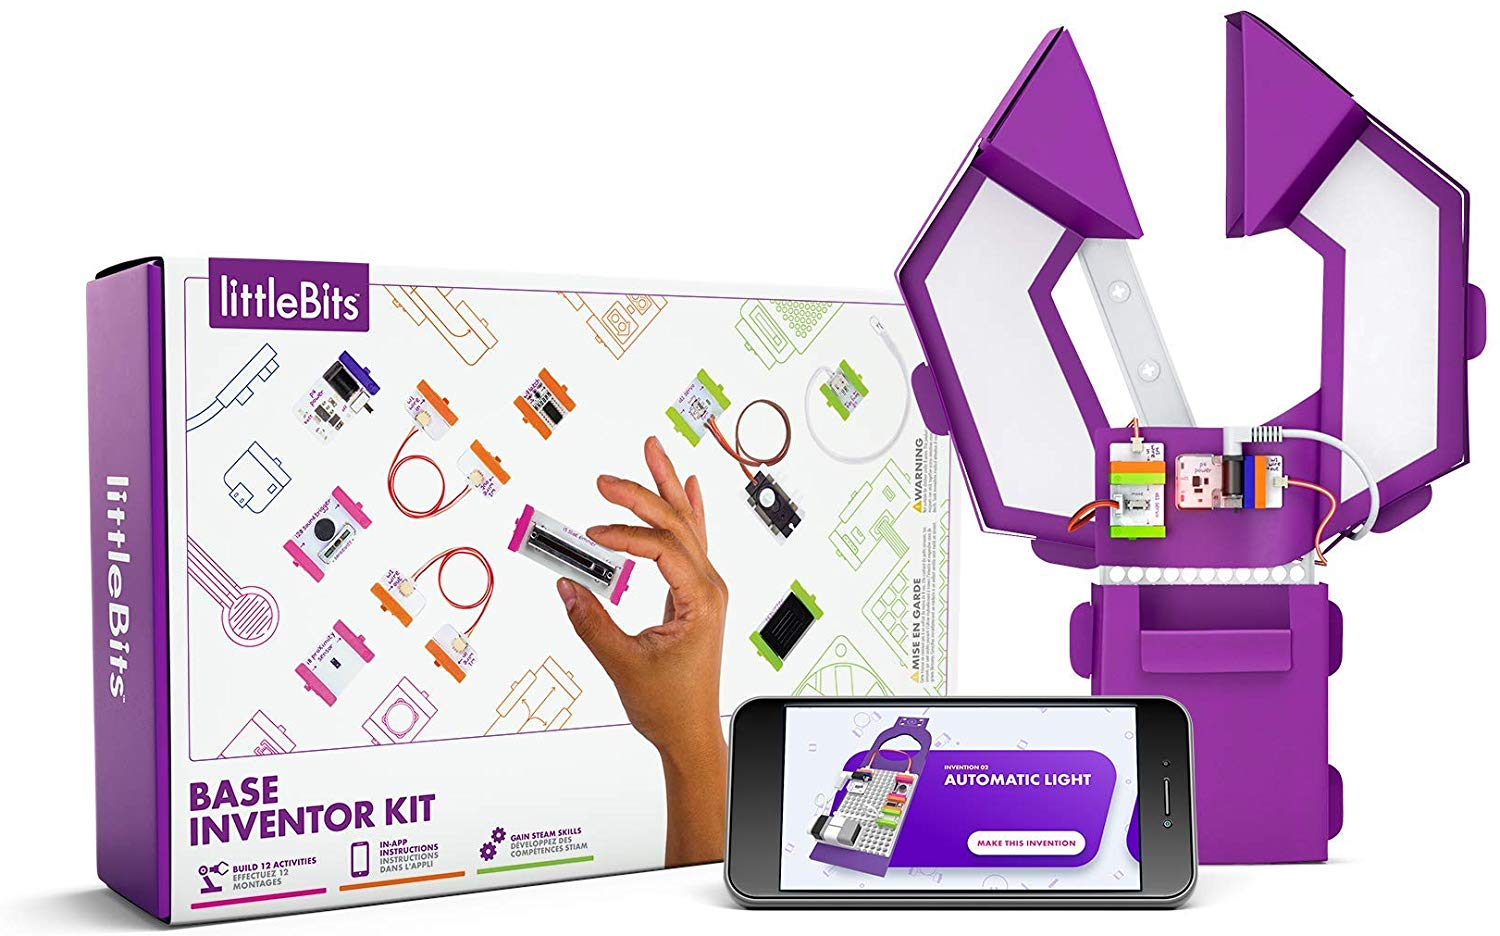 LittleBits inventor kit for kids